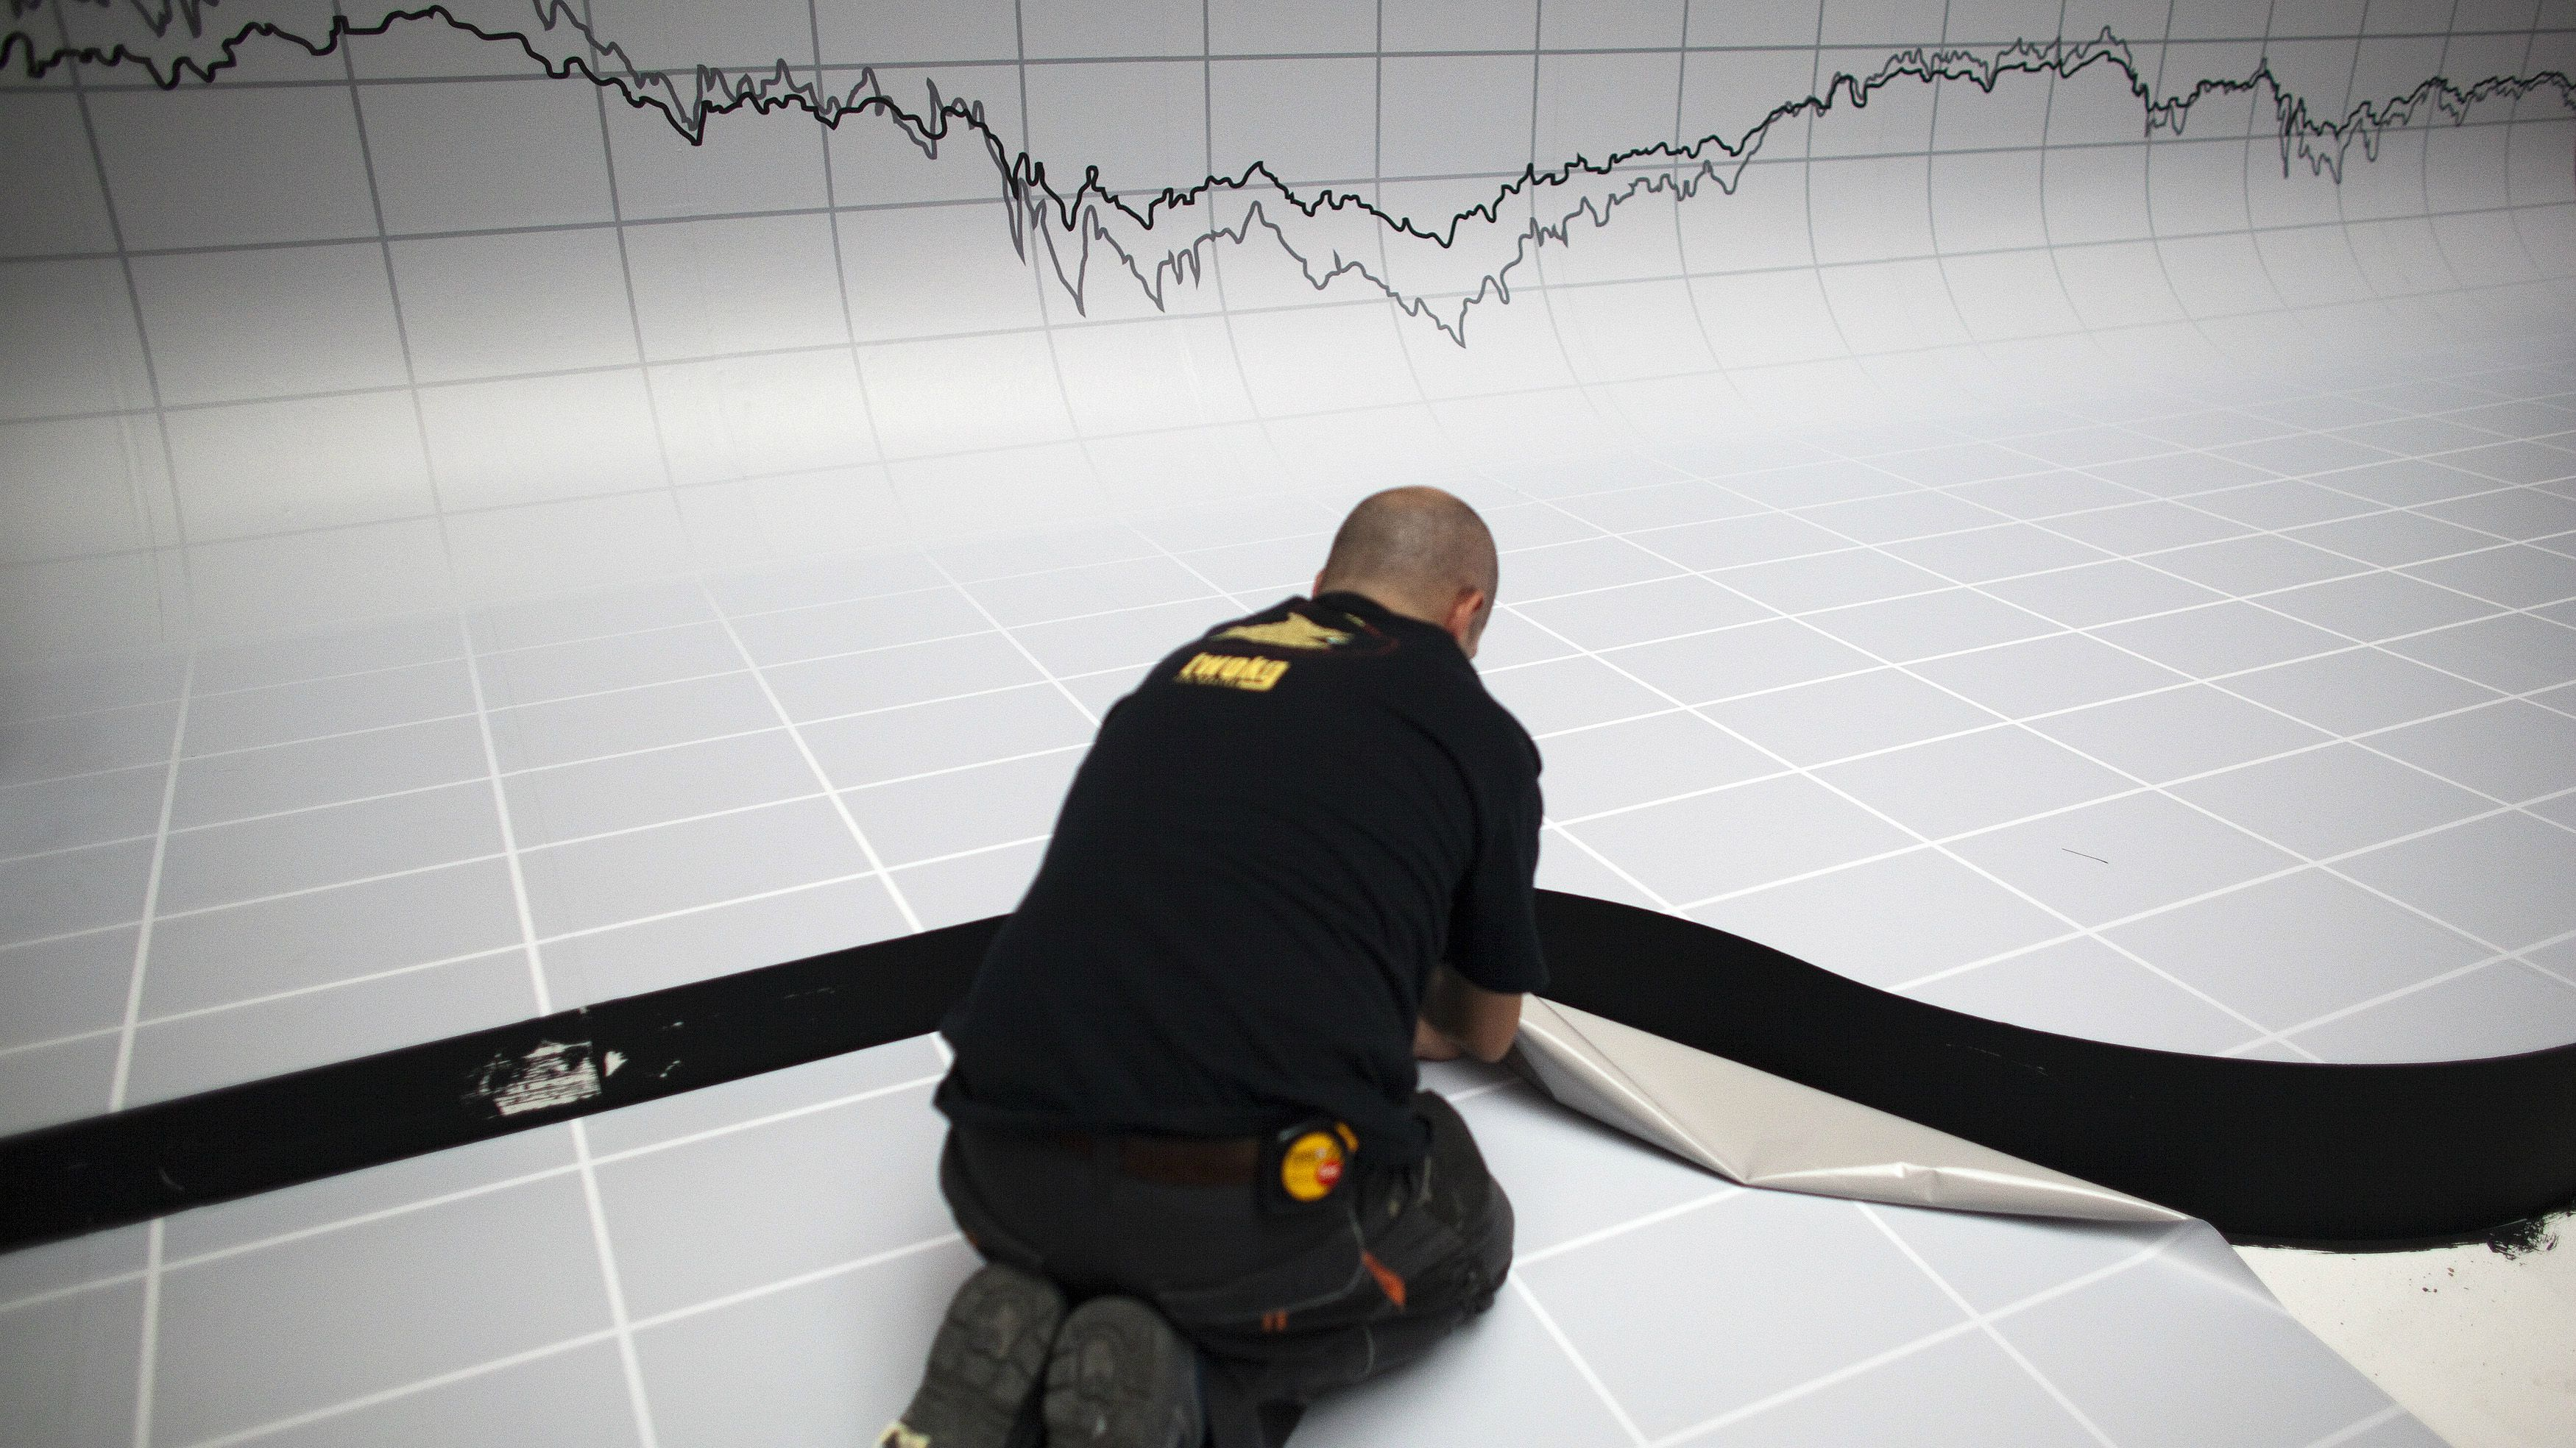 DATE IMPORTED:May 17, 2012A graph is seen above a worker as he puts the finishing touches to a stage decoration for an investment funds awards dinner at the Madrid stock exchange May 17, 2012. Spain's benchmark IBEX index fell nearly 2 percent to its lowest level since mid-2003, as shares in Bankia slumped following a report in the El Mundo newspaper that its customers had withdrawn more than 1 billion euros from their accounts over the past week. REUTERS/Paul Hanna (SPAIN - Tags: BUSINESS POLITICS TPX IMAGES OF THE DAY)